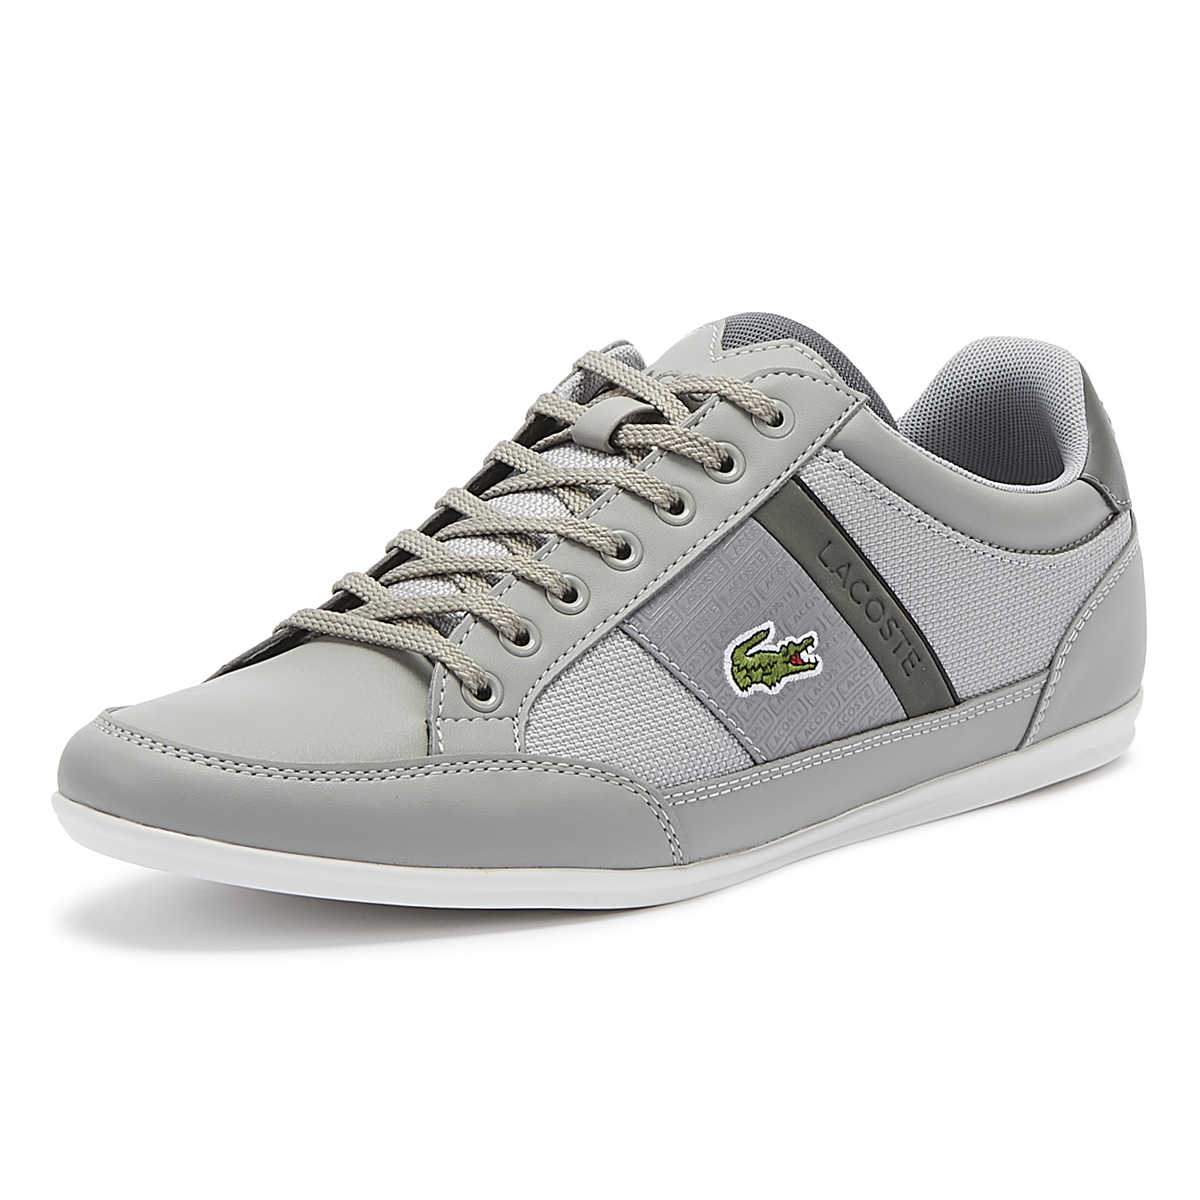 hot sale online classic style more photos Lacoste Chaymon 319 3 Mens Grey Trainers Lace Up Sport Casual ...